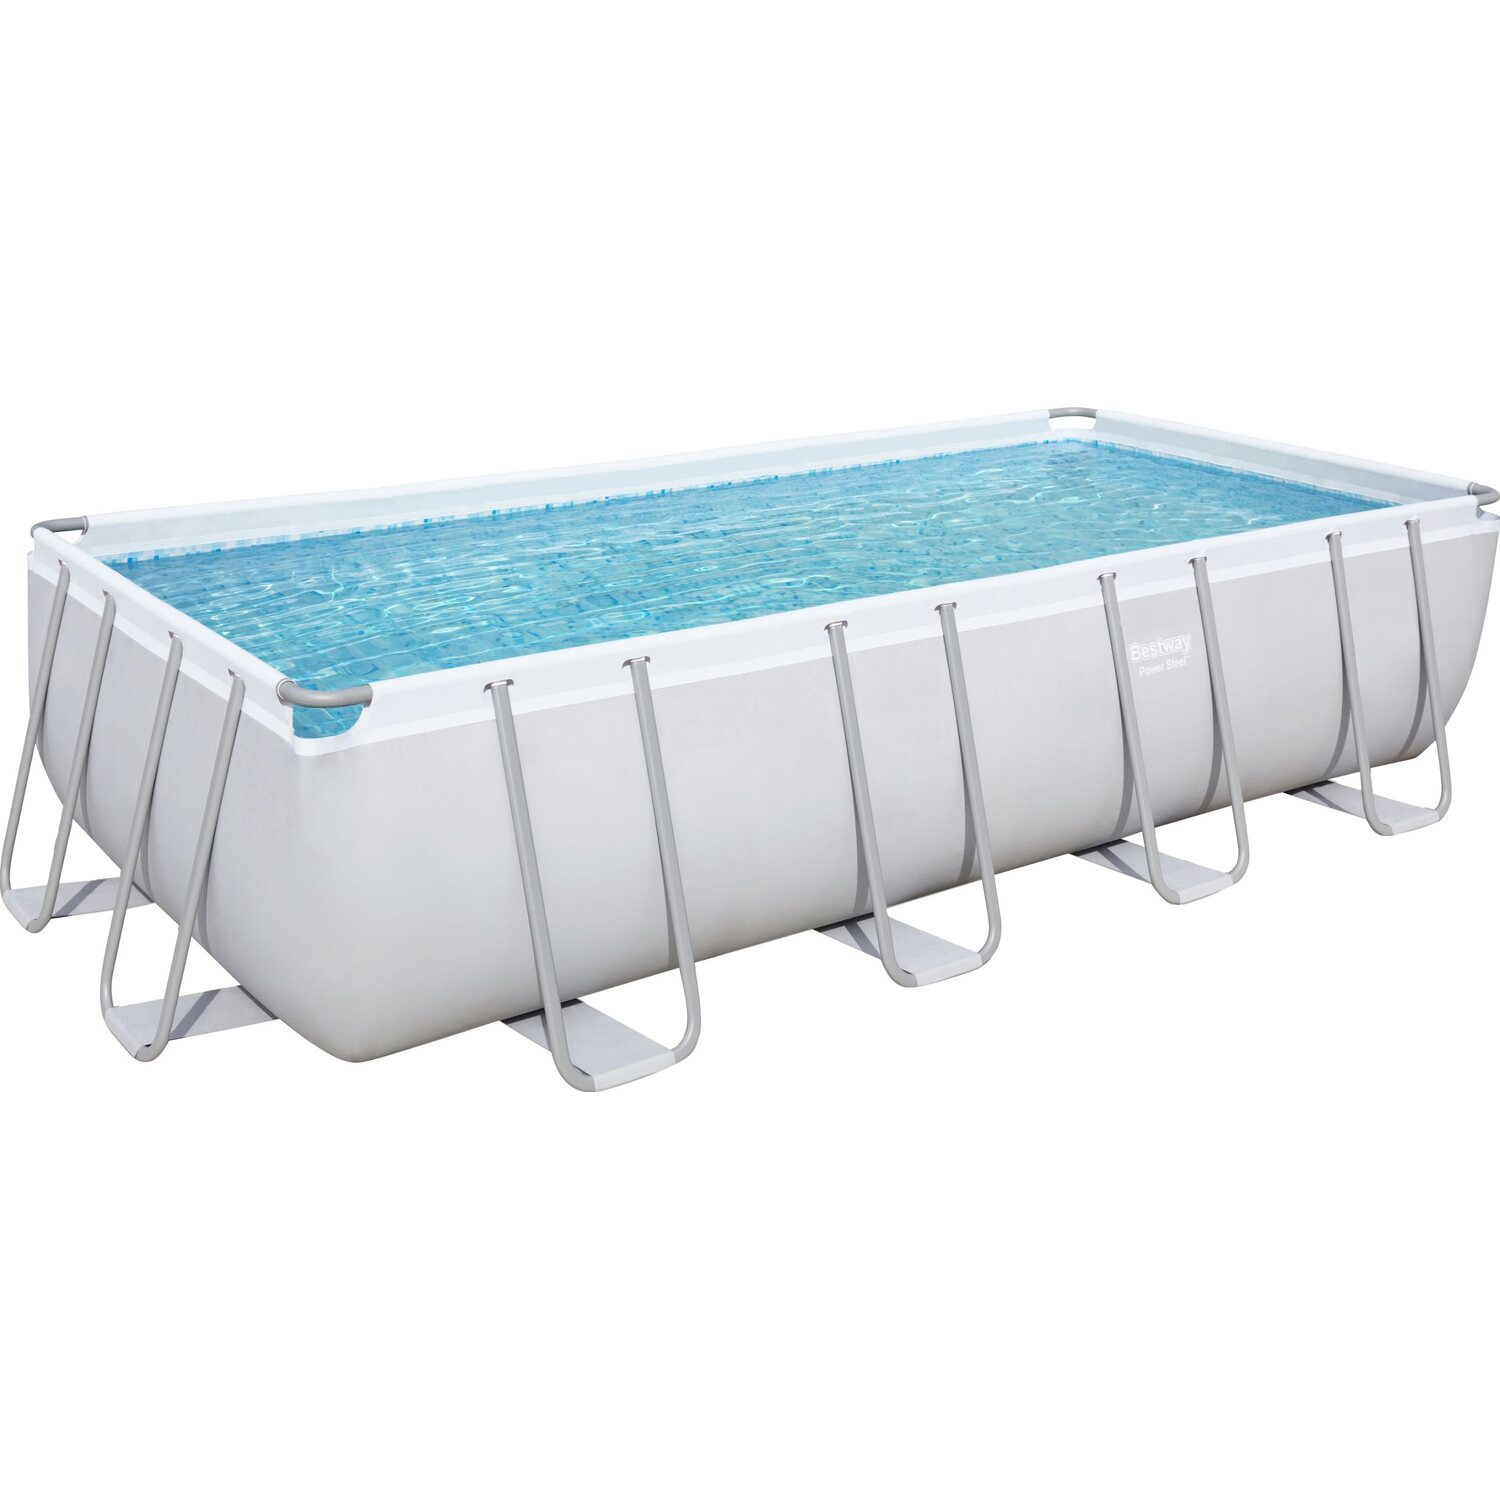 Bestway stahlrahmen pool set 549 cm x 274 cm x 122 cm for Bestway pool bei obi